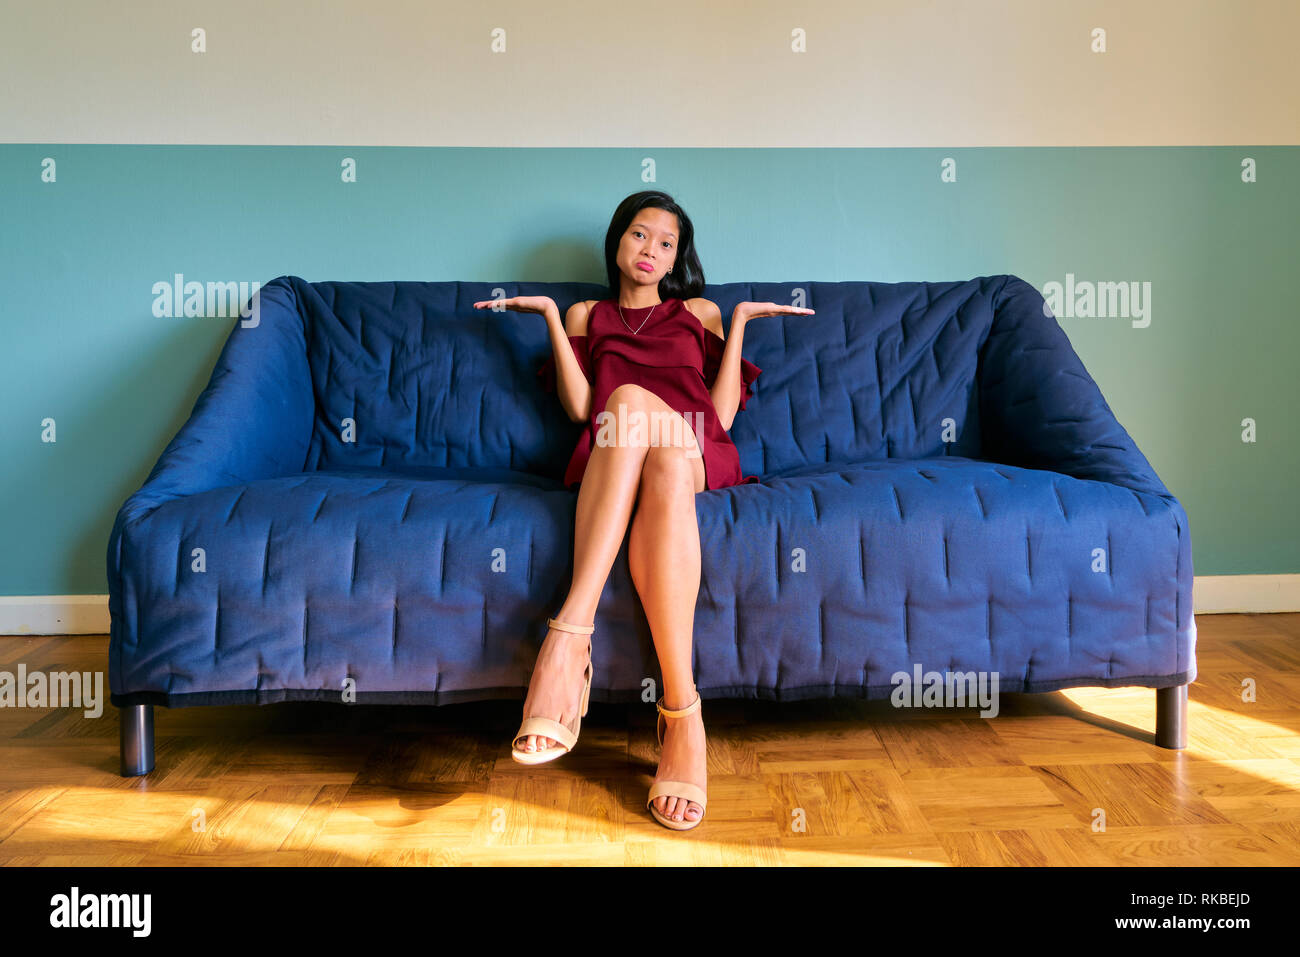 Beautiful woman posing - attractive young woman shrugging sitting on the sofa - Stock Image